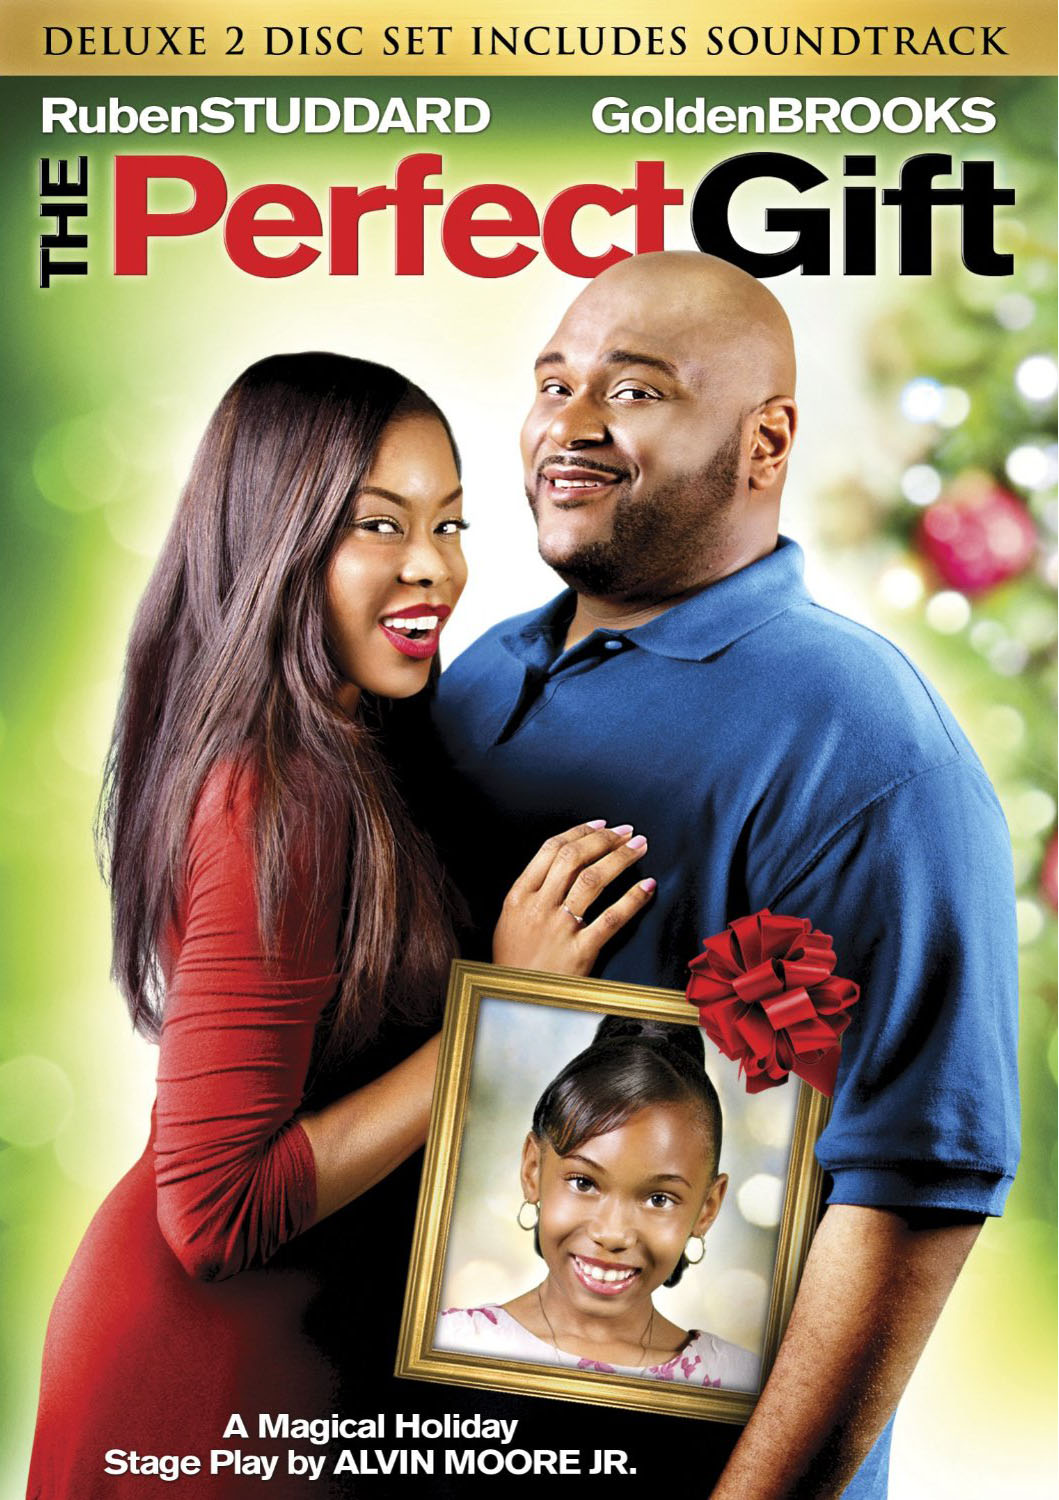 The Perfect Gift on DVD - Blackfilm - Black Movies, Television, and Theatre News